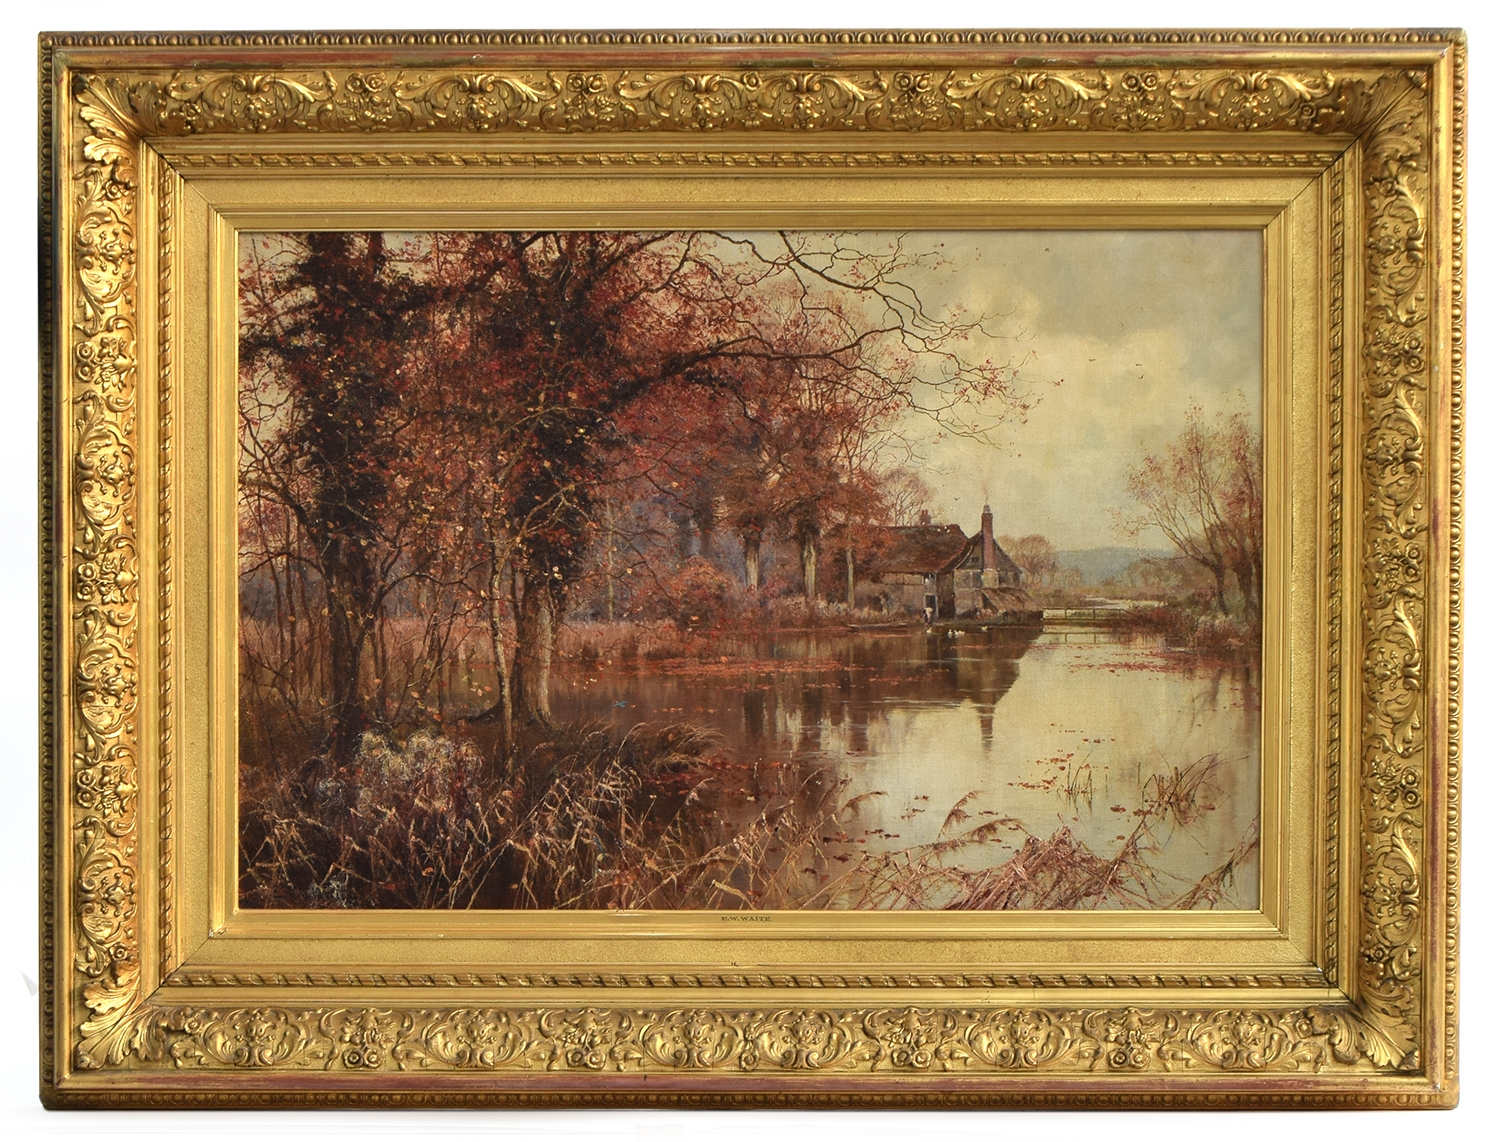 Edward Wilkins Waite RBA (British, 1854-1924), The fall of the leaf, oil on canvas, 49.5 x 73.5cm - Image 2 of 2